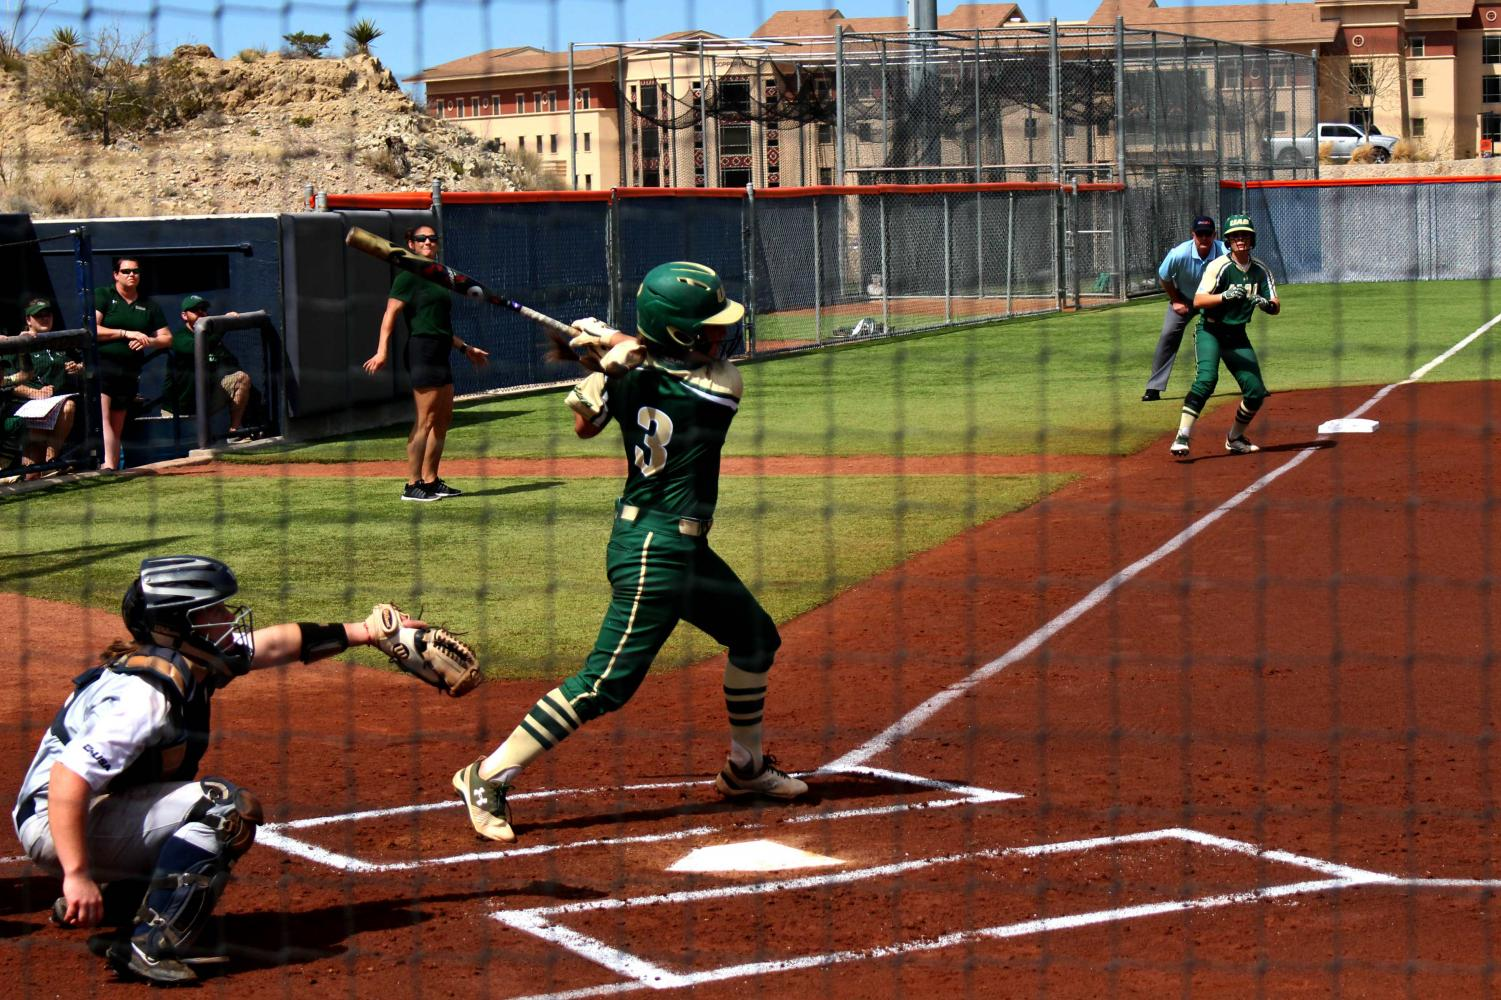 UAB beat UTEP 11-0 and 8-6 in a doubleheader on Saturday afternoon at Helen of Troy Softball Complex.